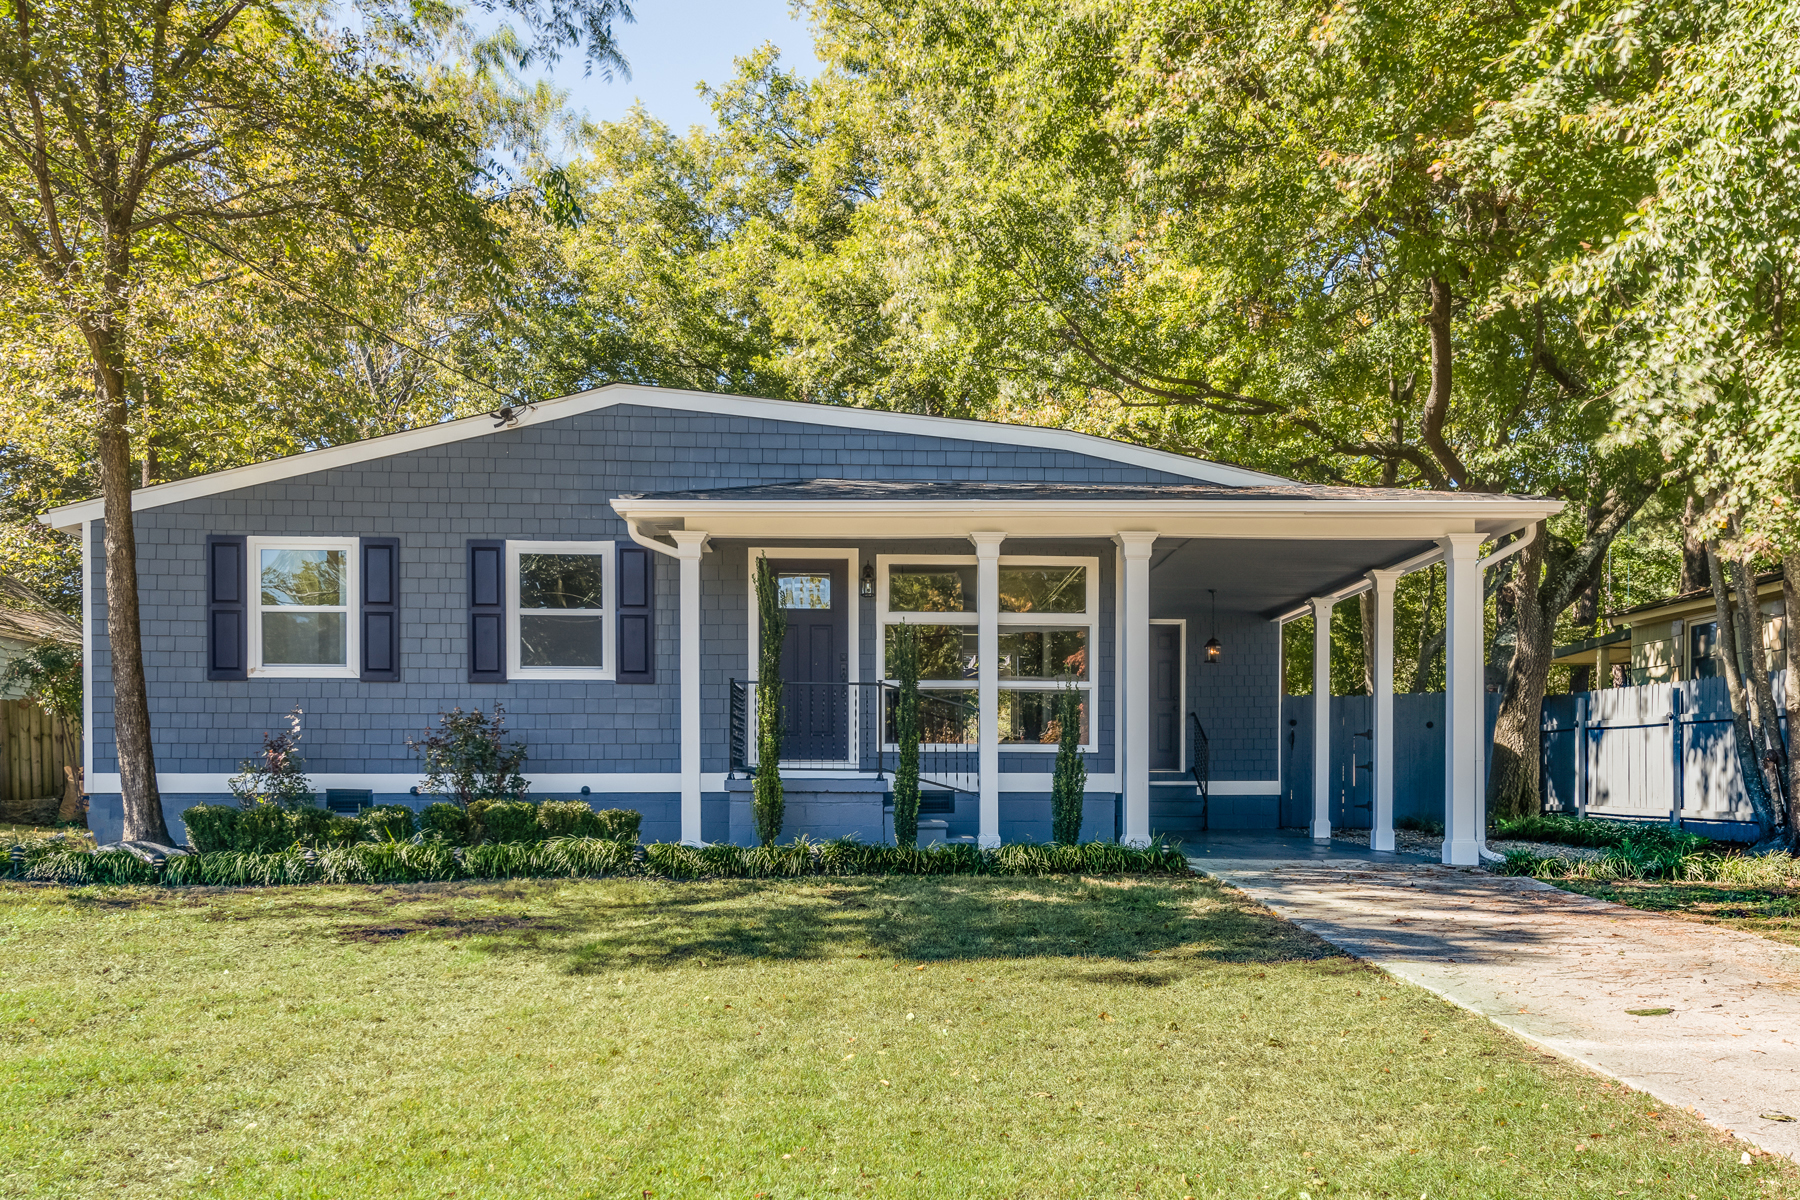 Single Family Home for Sale at Welcoming Bungalow Just Renovated With Gorgeous Finishes Throughout 3226 Clairwood Terrace Chamblee, Georgia 30341 United States